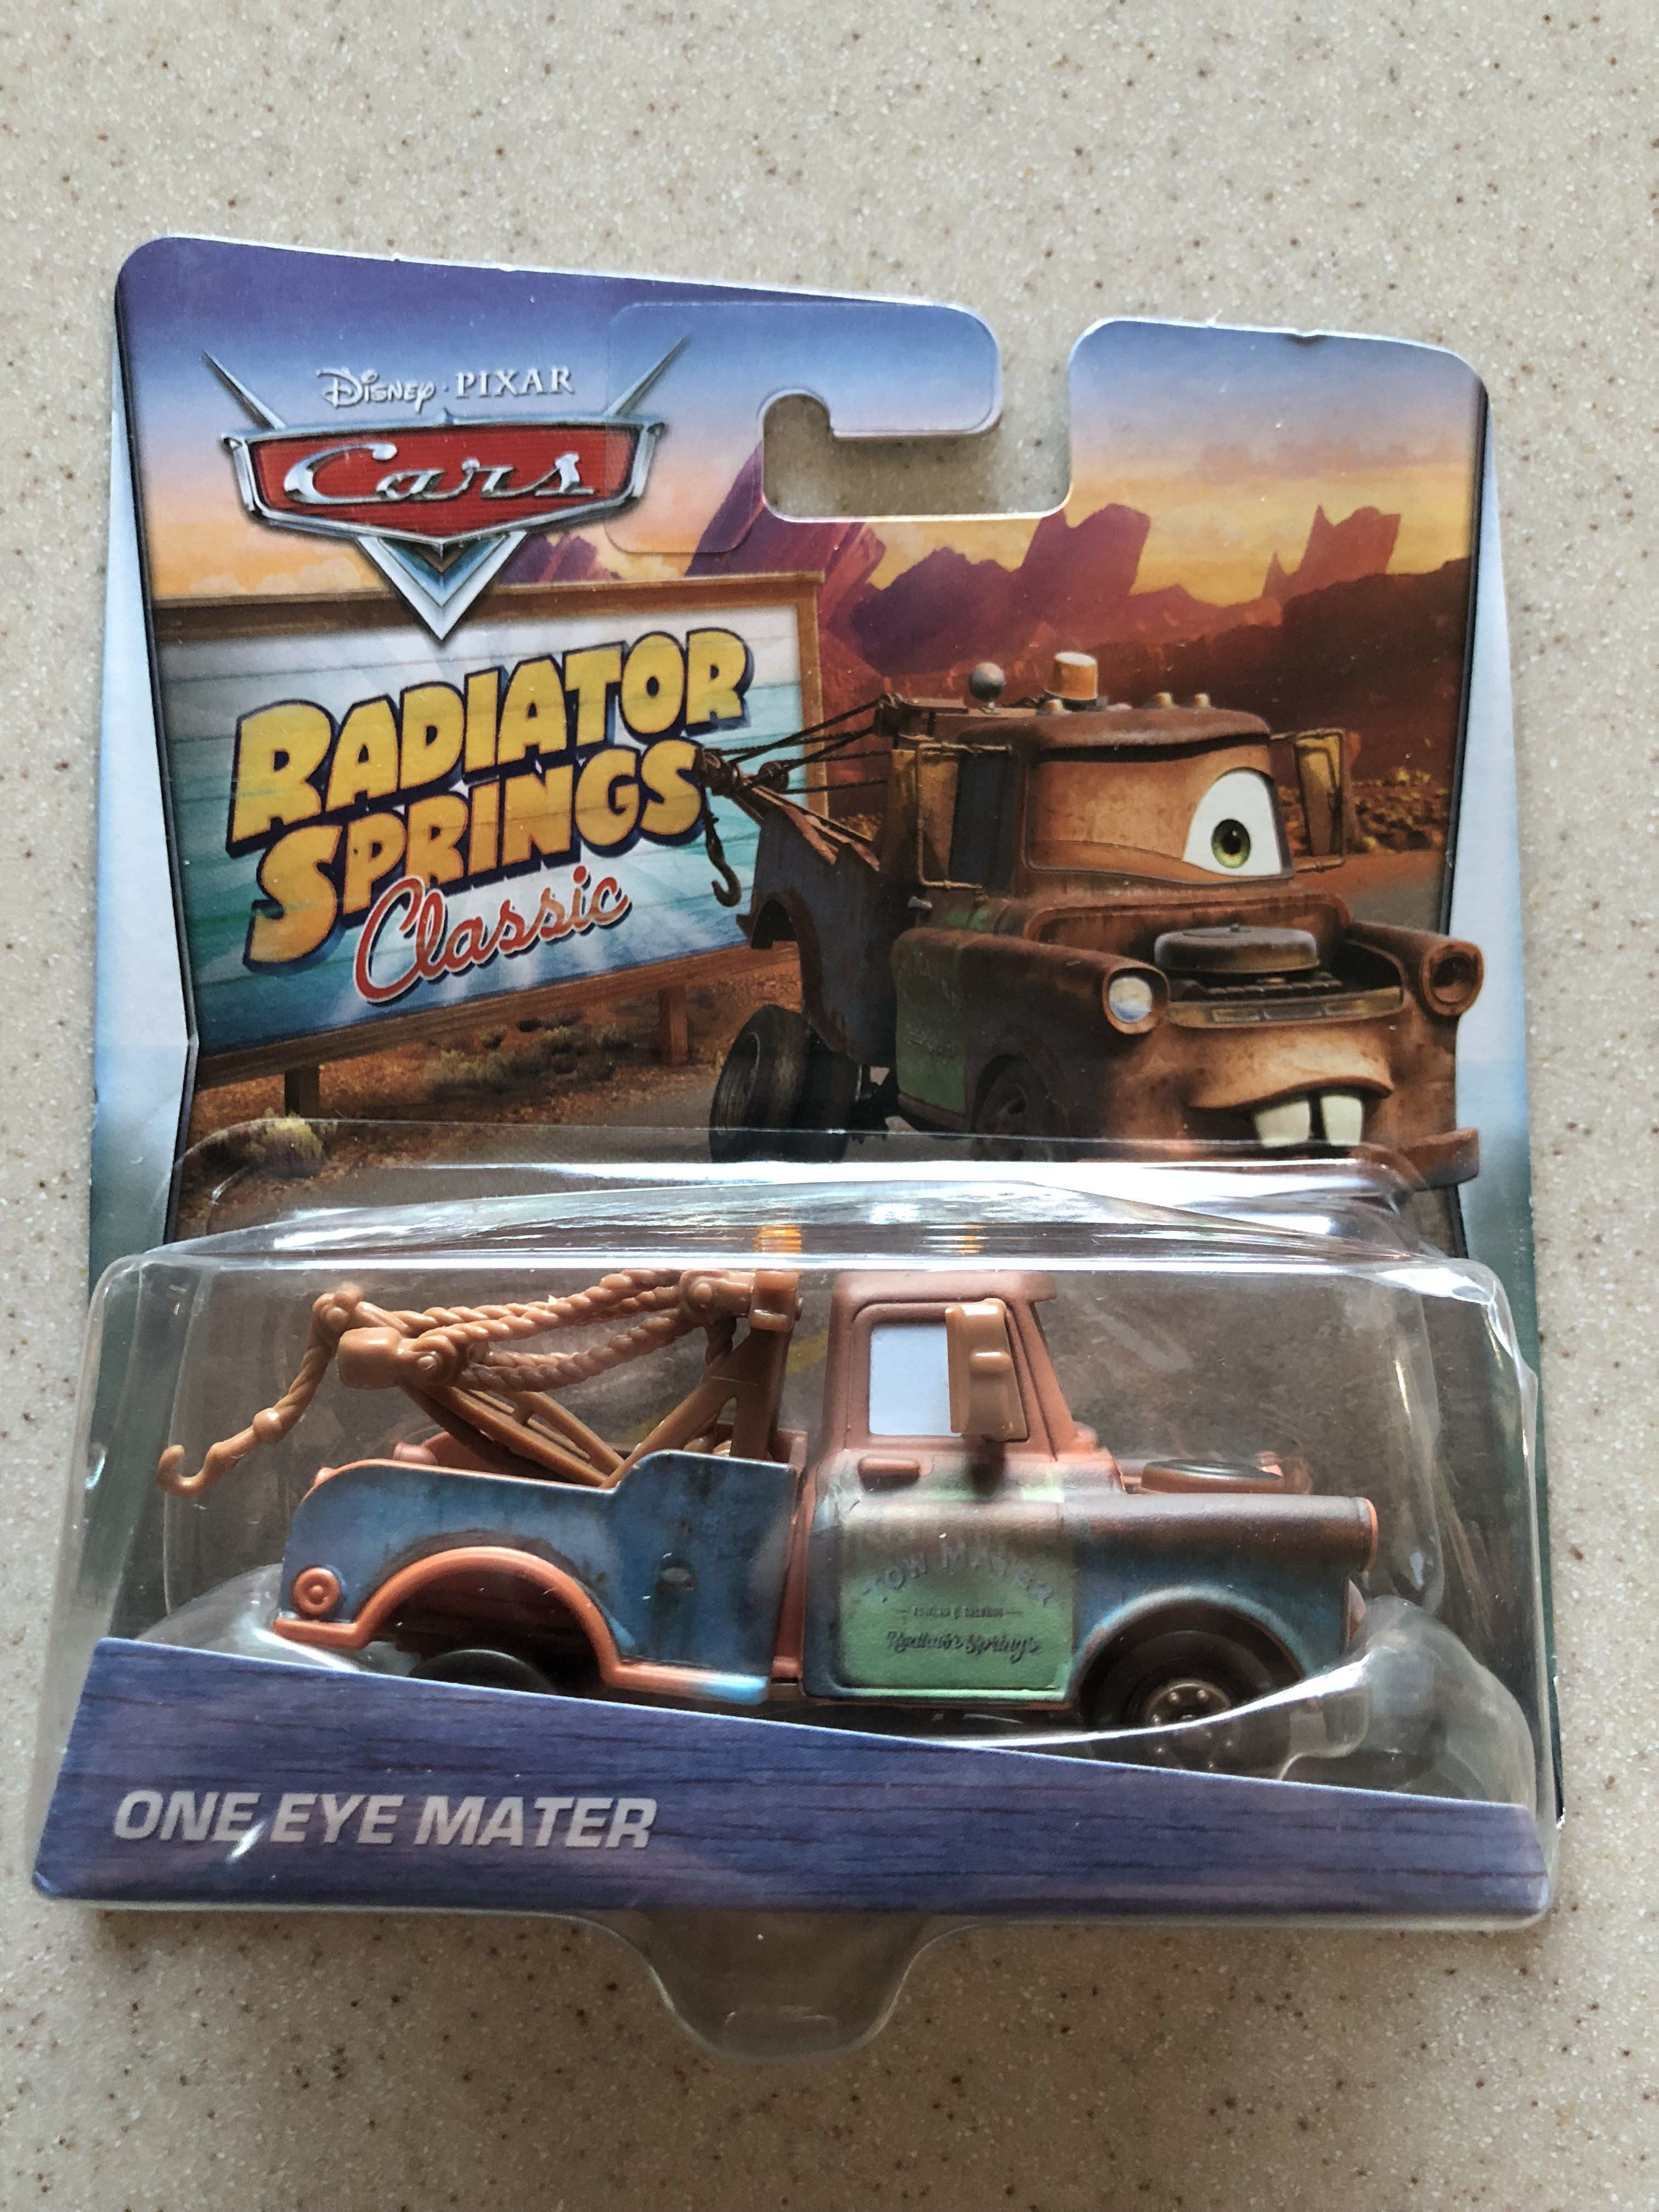 Radiator Springs Classic Cars One Eye Mater Products Classic